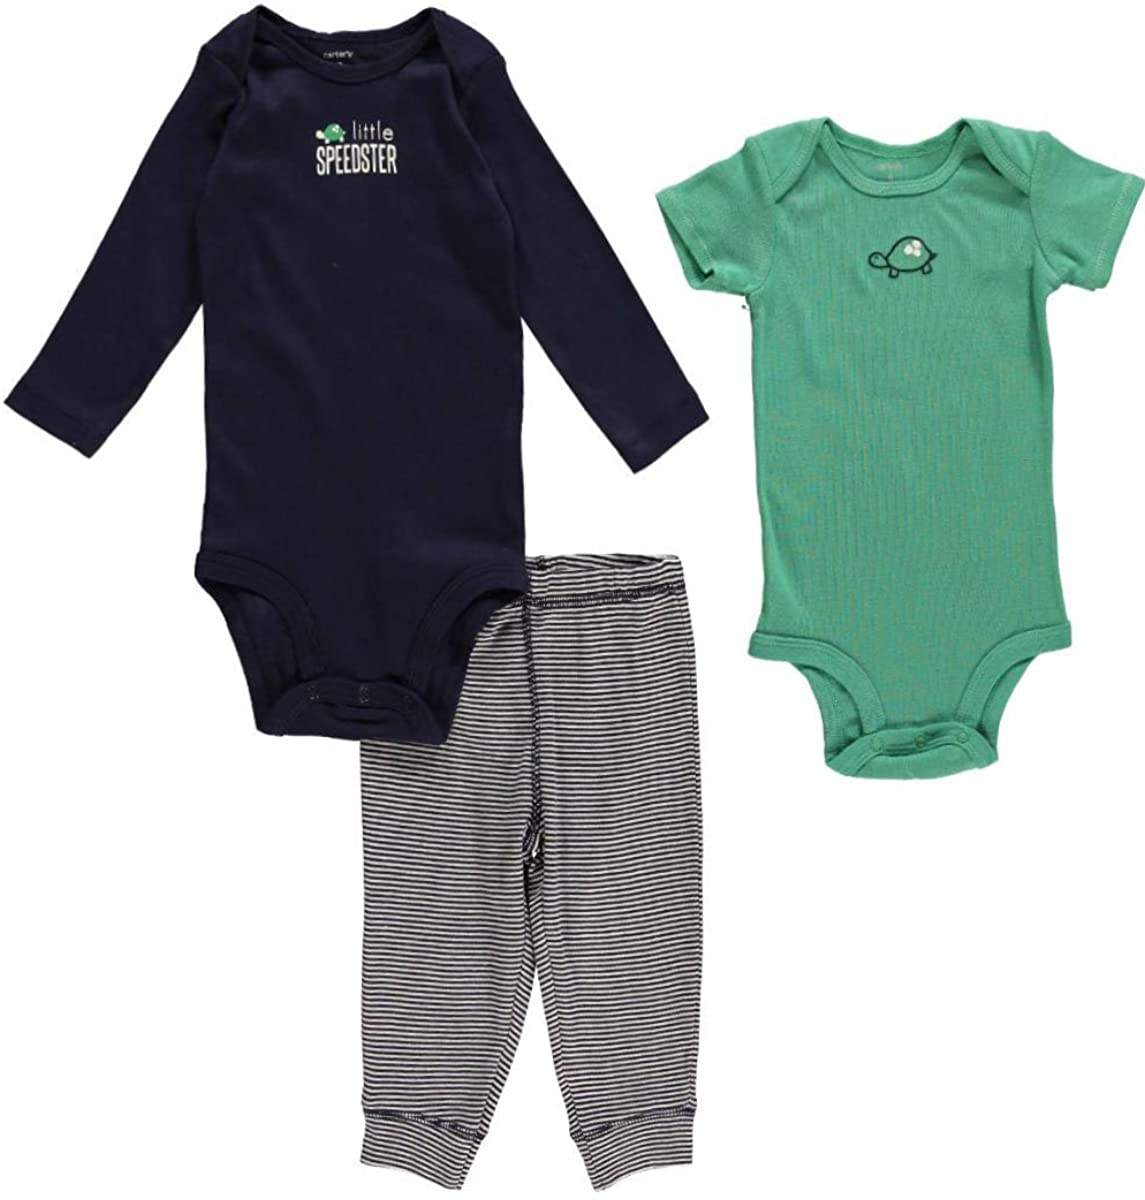 Carters Baby Boys 3 Piece Take me Away Set (Baby) - Lil Speedster - Navy - Newborn